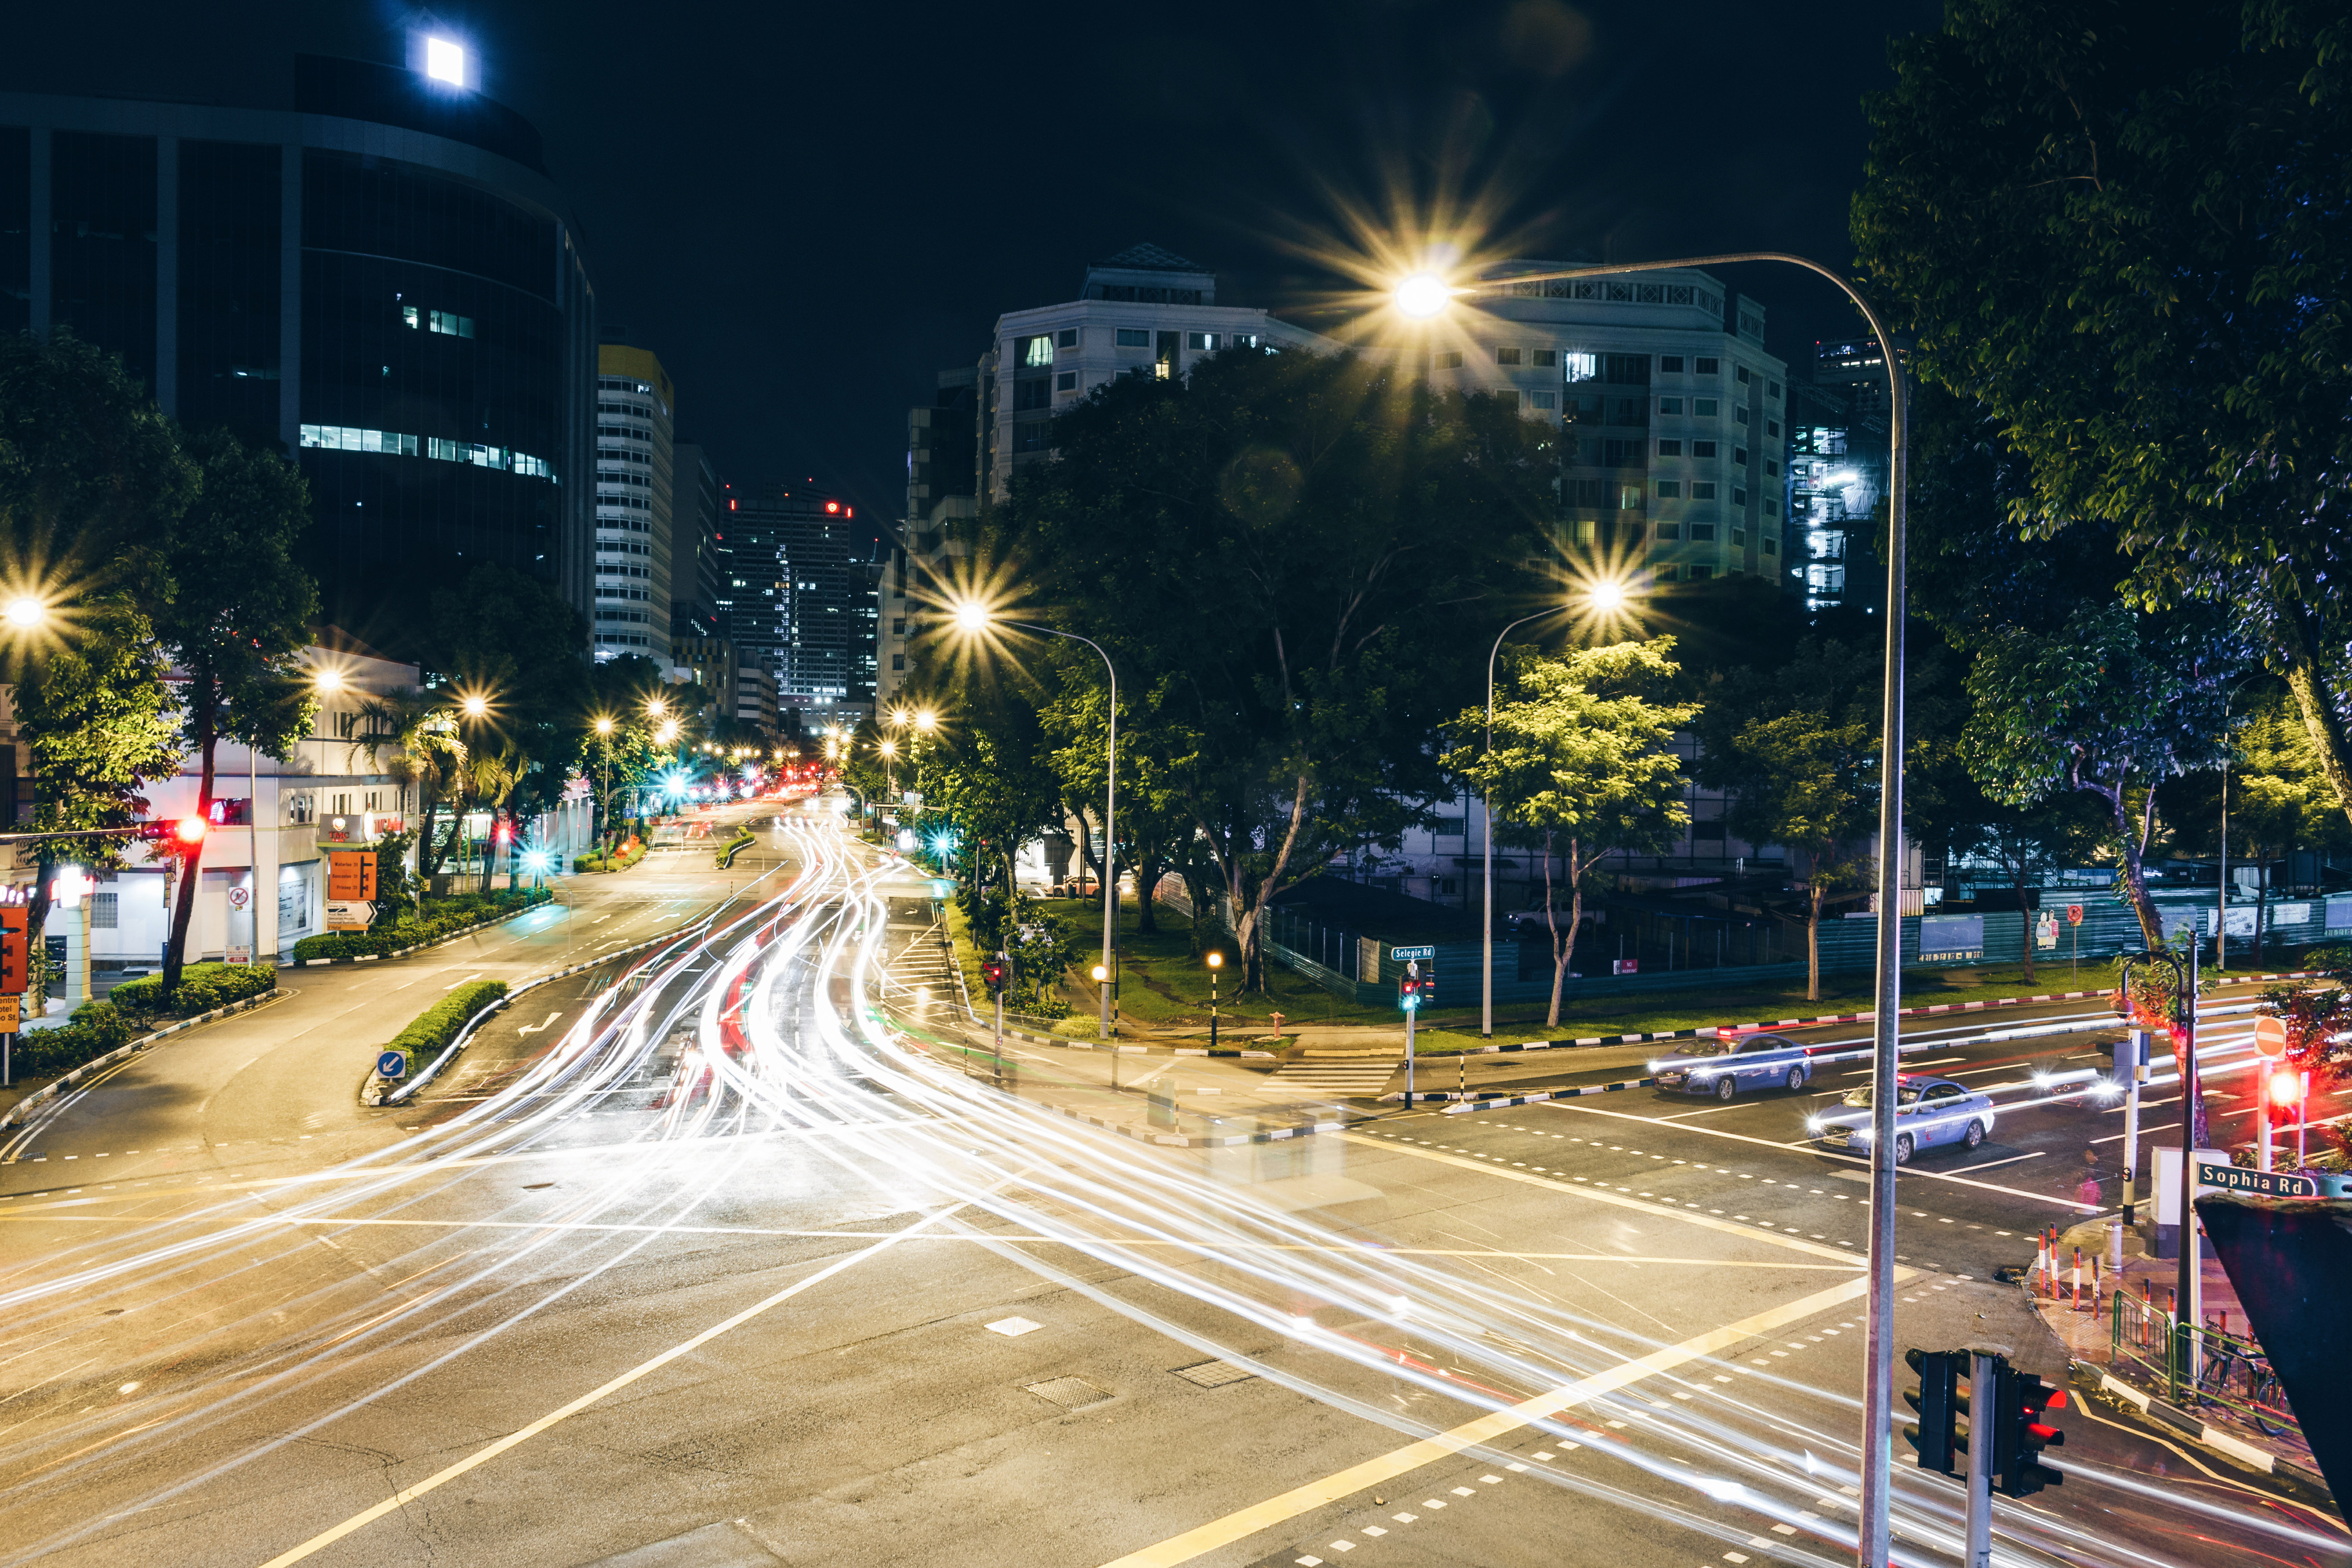 Stock Chart Singapore: Night Time Time-Lapse of Singapore Streets - Free Public Domain ,Chart